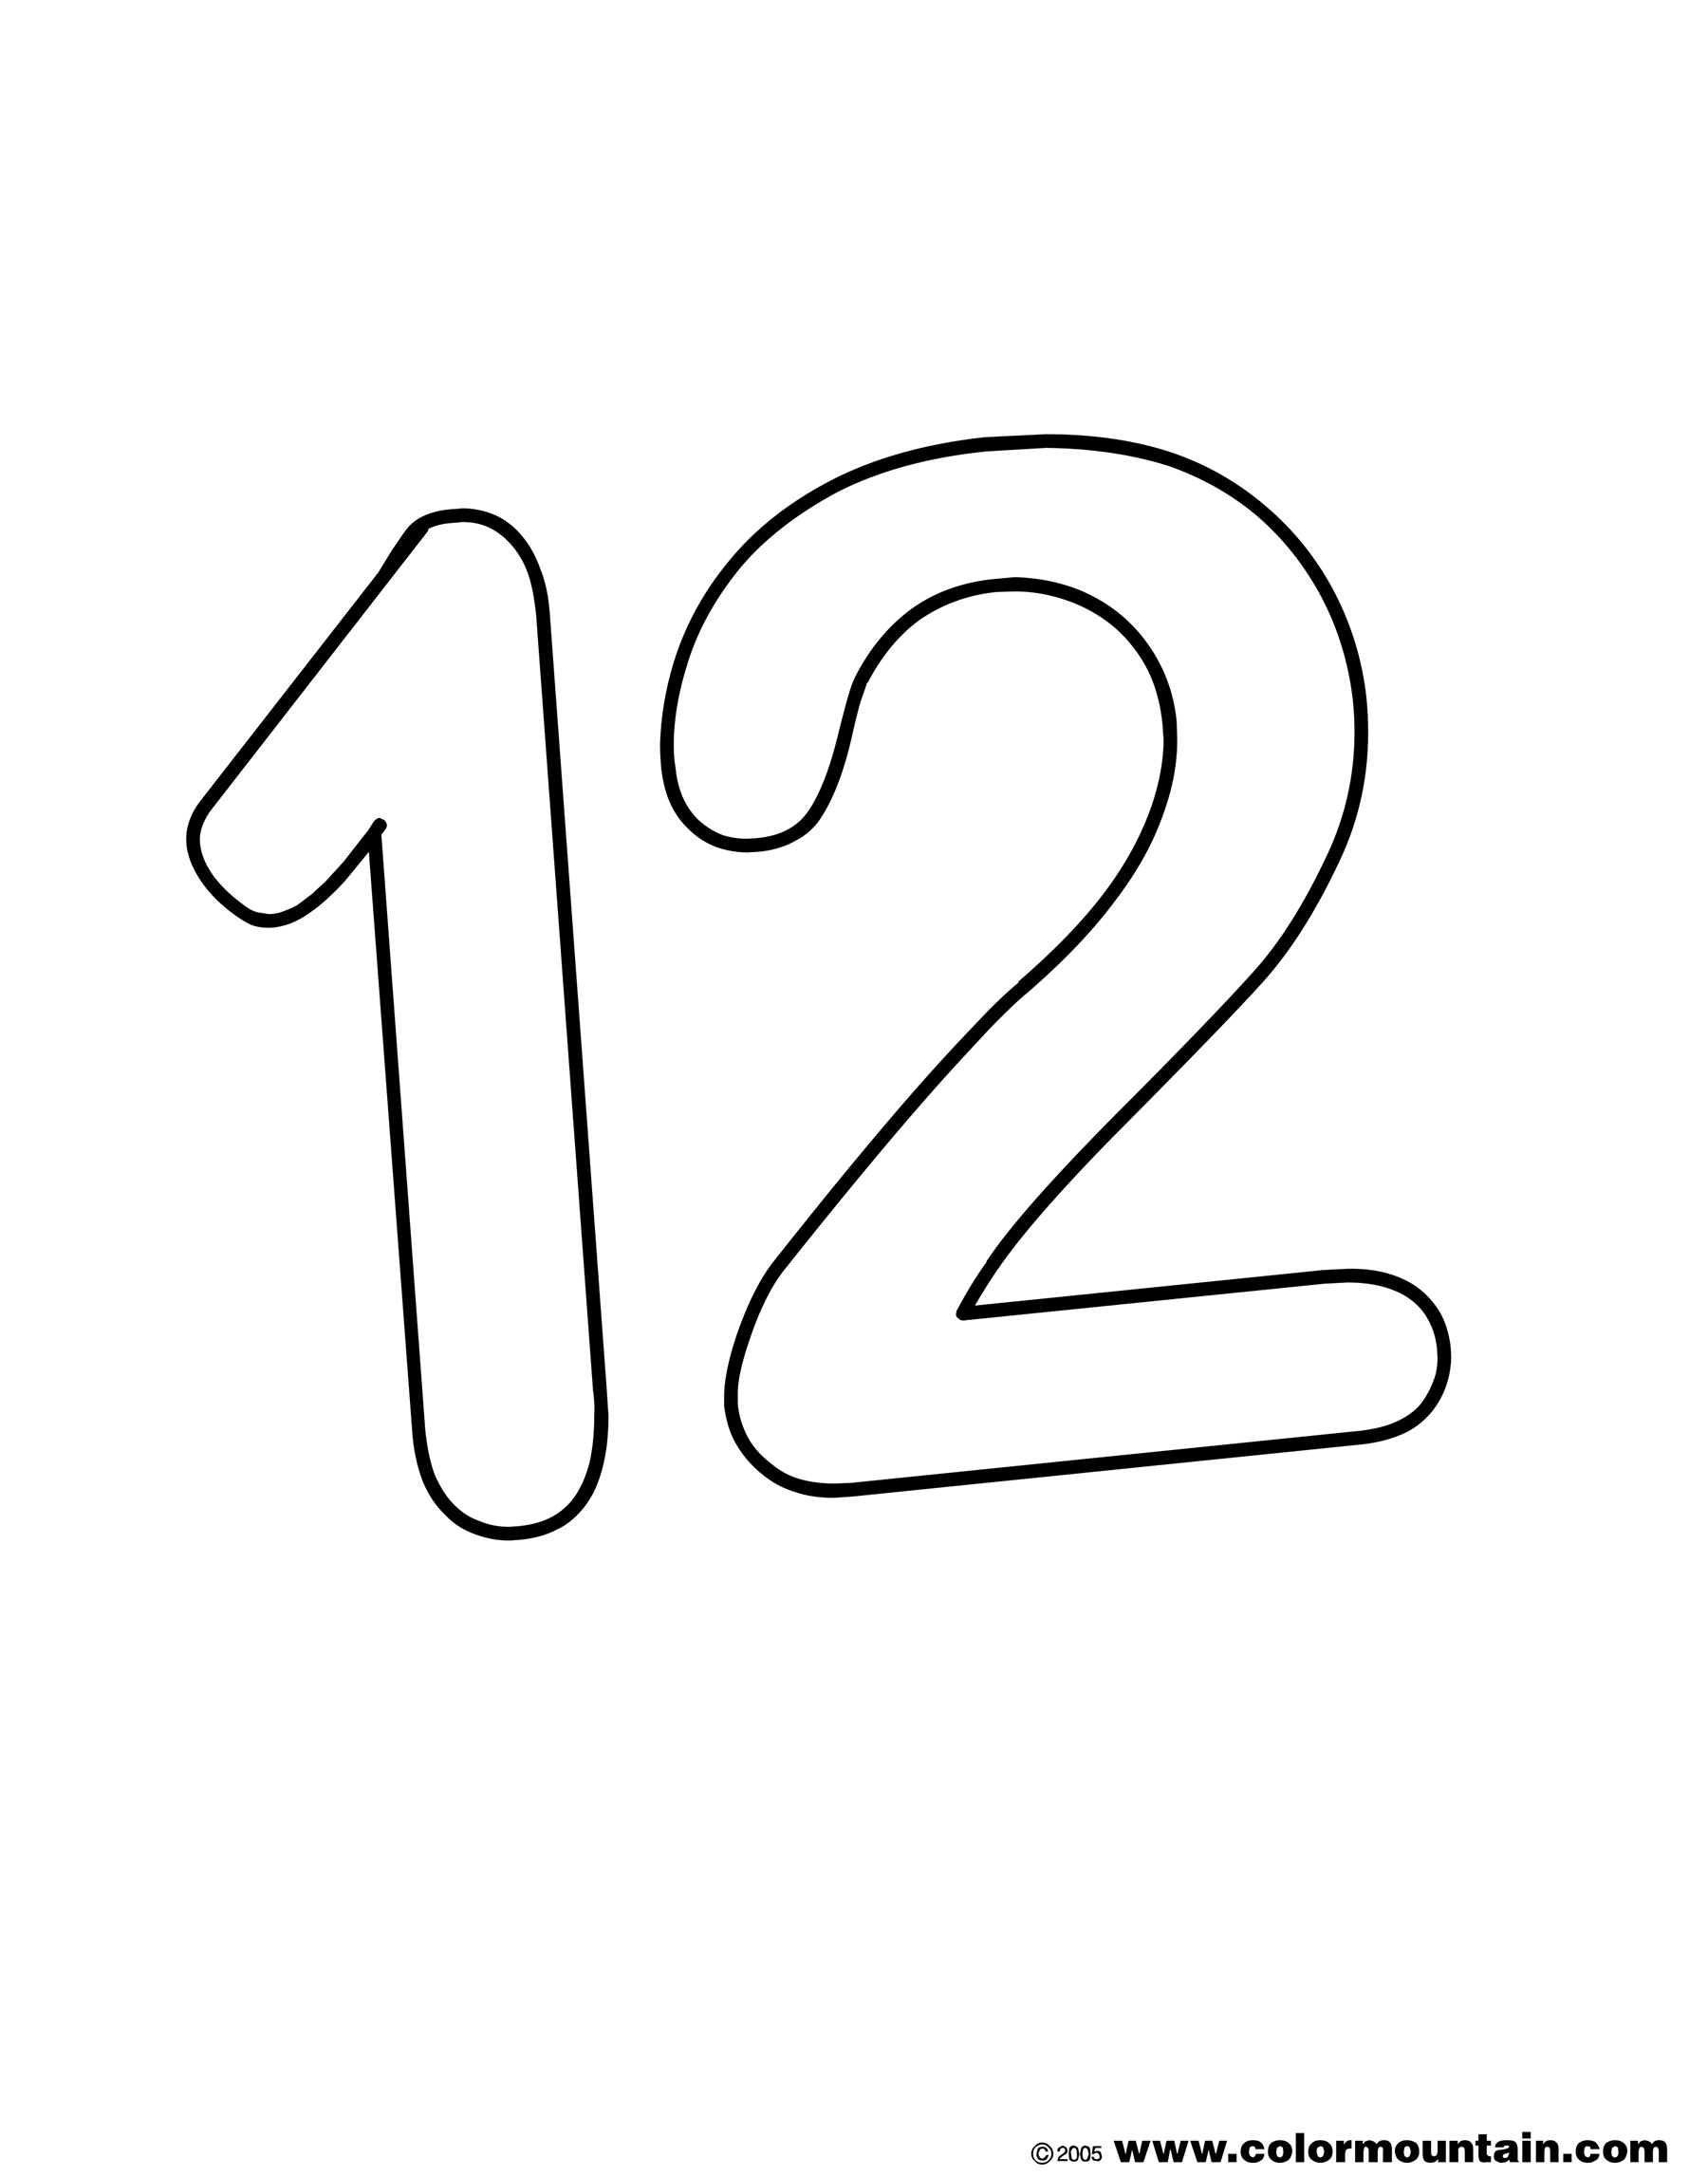 coloring number 12 number twelve coloring sheet create a printout or activity coloring number 12